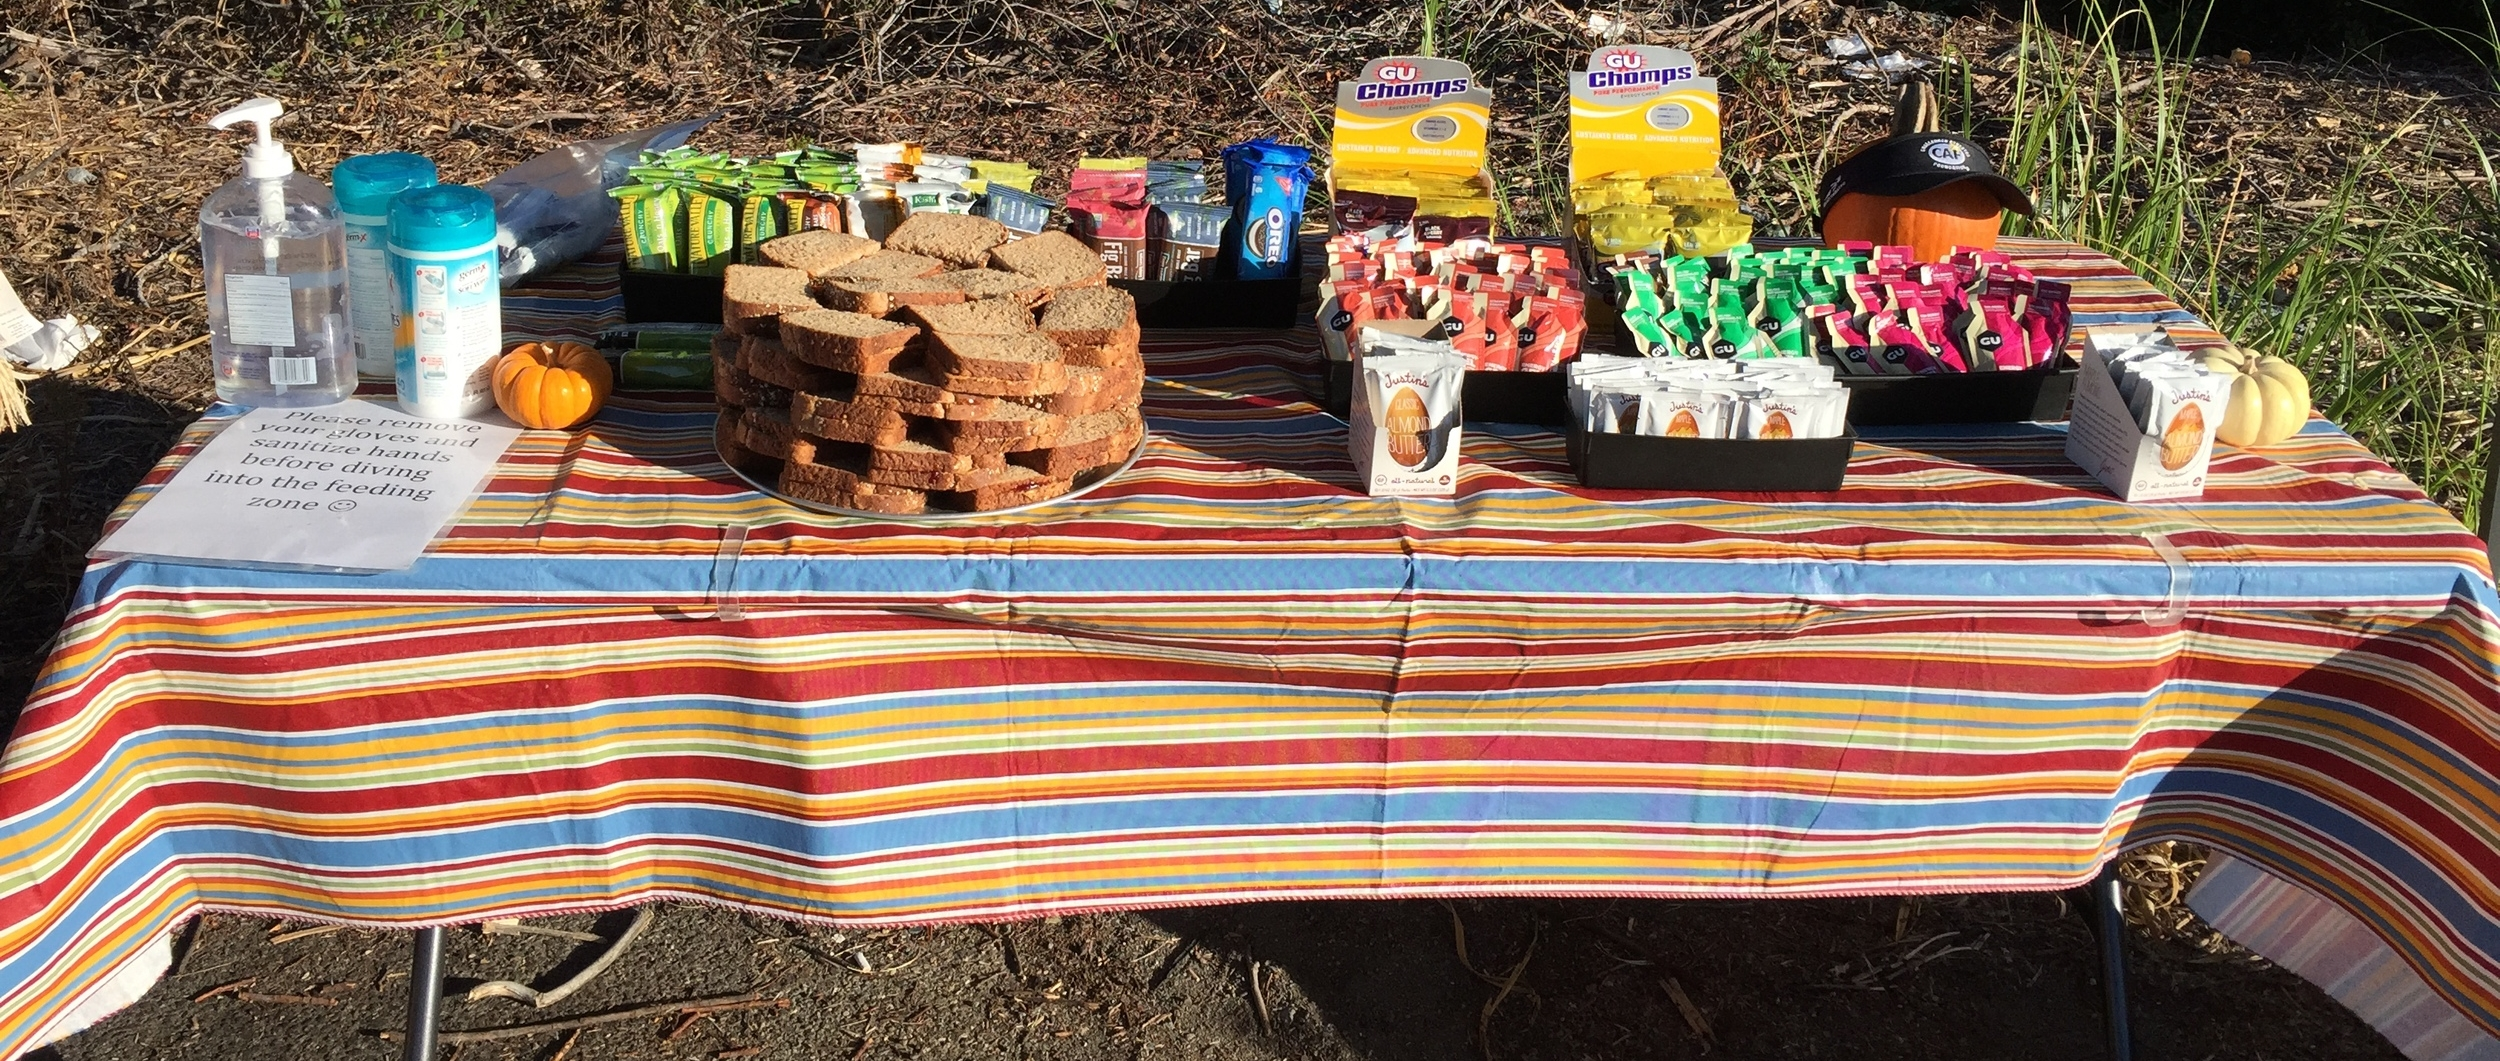 Awesome rest stops loaded with home made cakes,treats, fruit and sandwiches etc